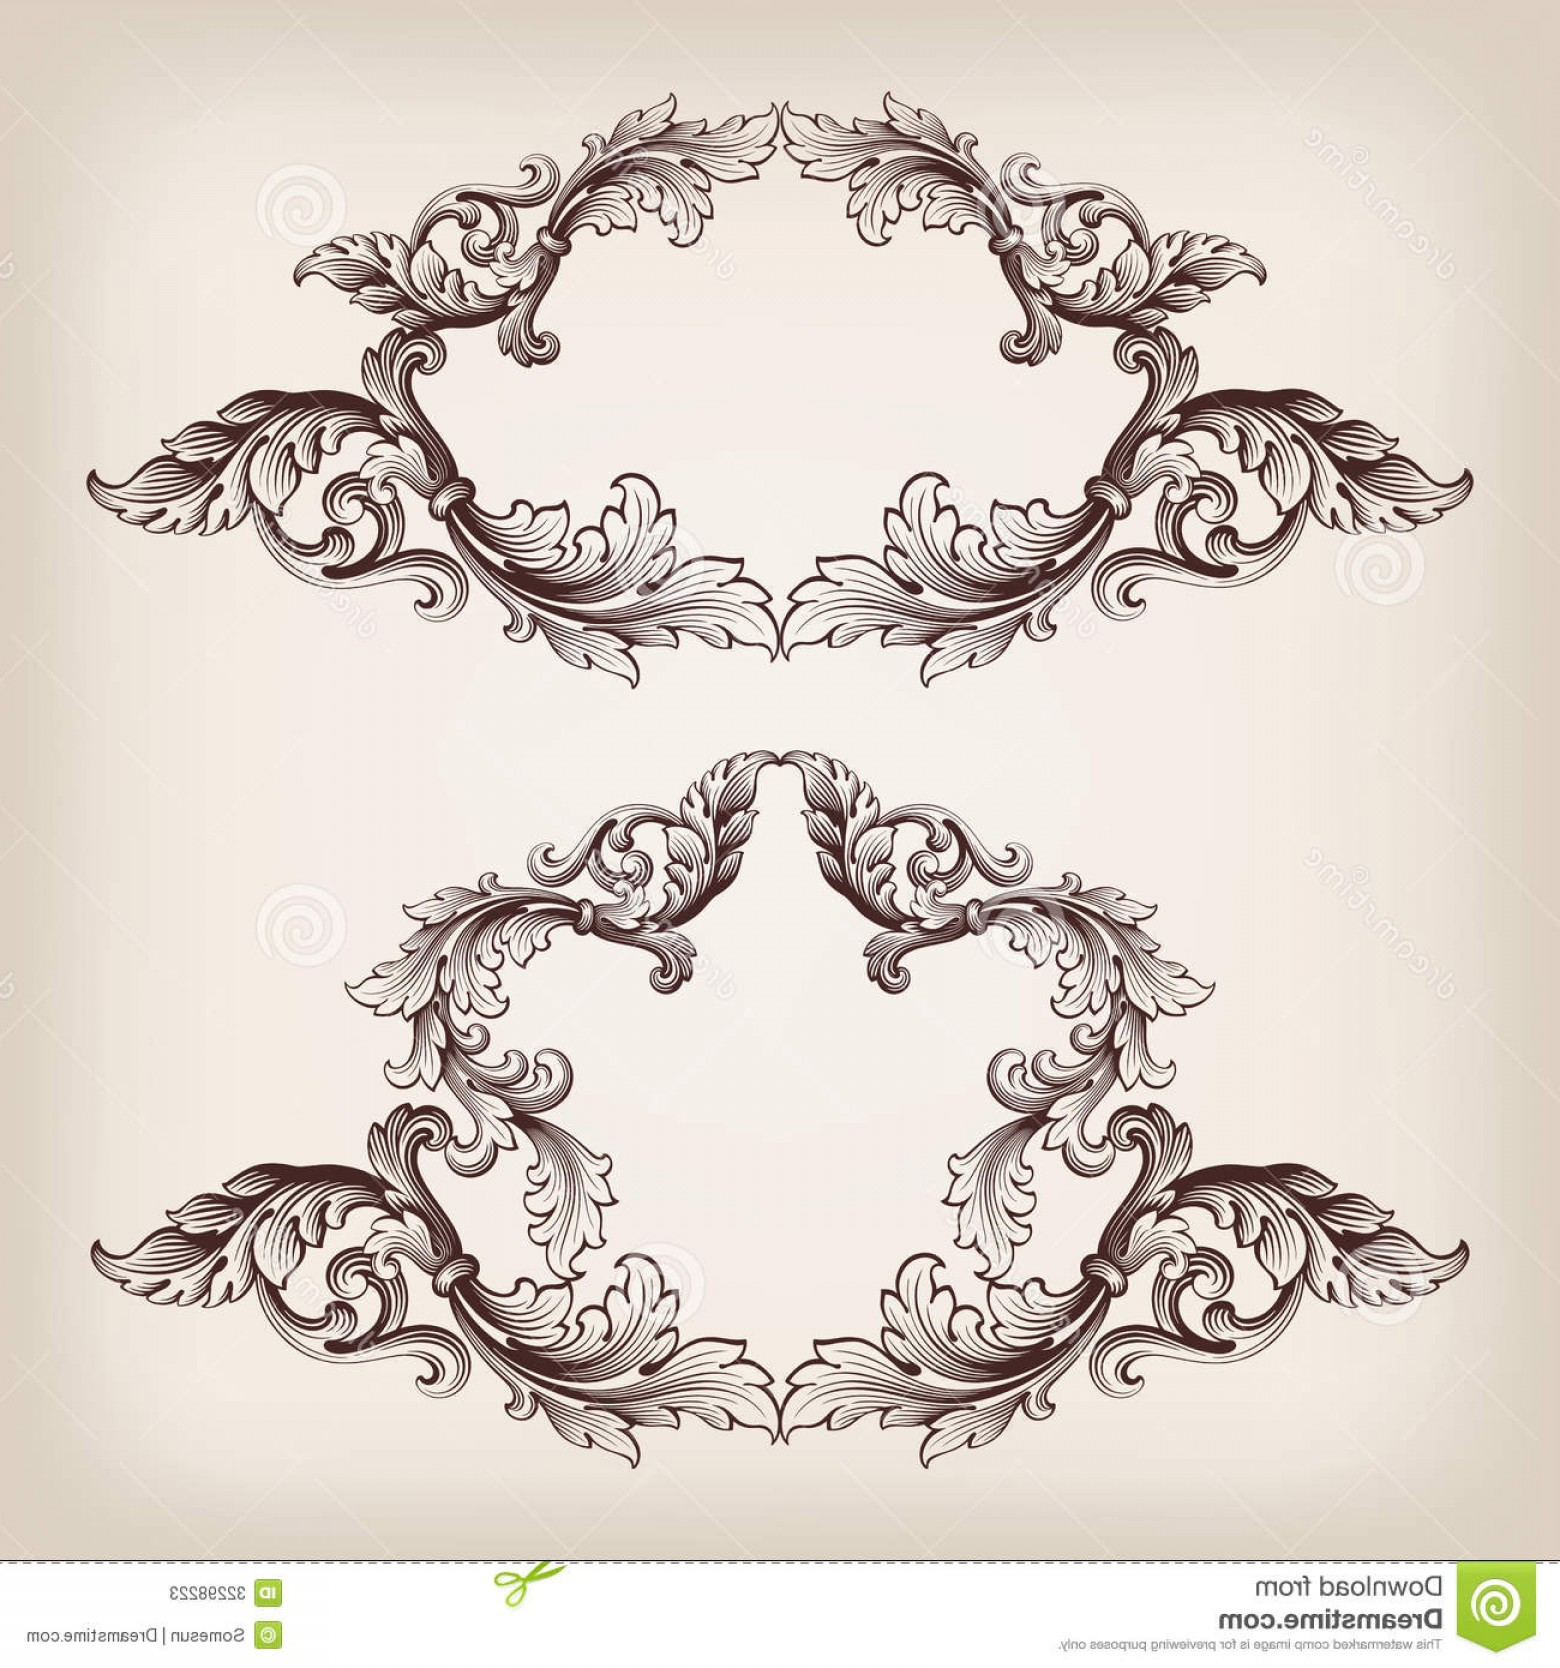 Baroque Vector Clip Art: Stock Photos Vintage Set Border Frame Engraving Baroque Vector Filigree Retro Ornament Pattern Antique Style Ornate Decorative Image